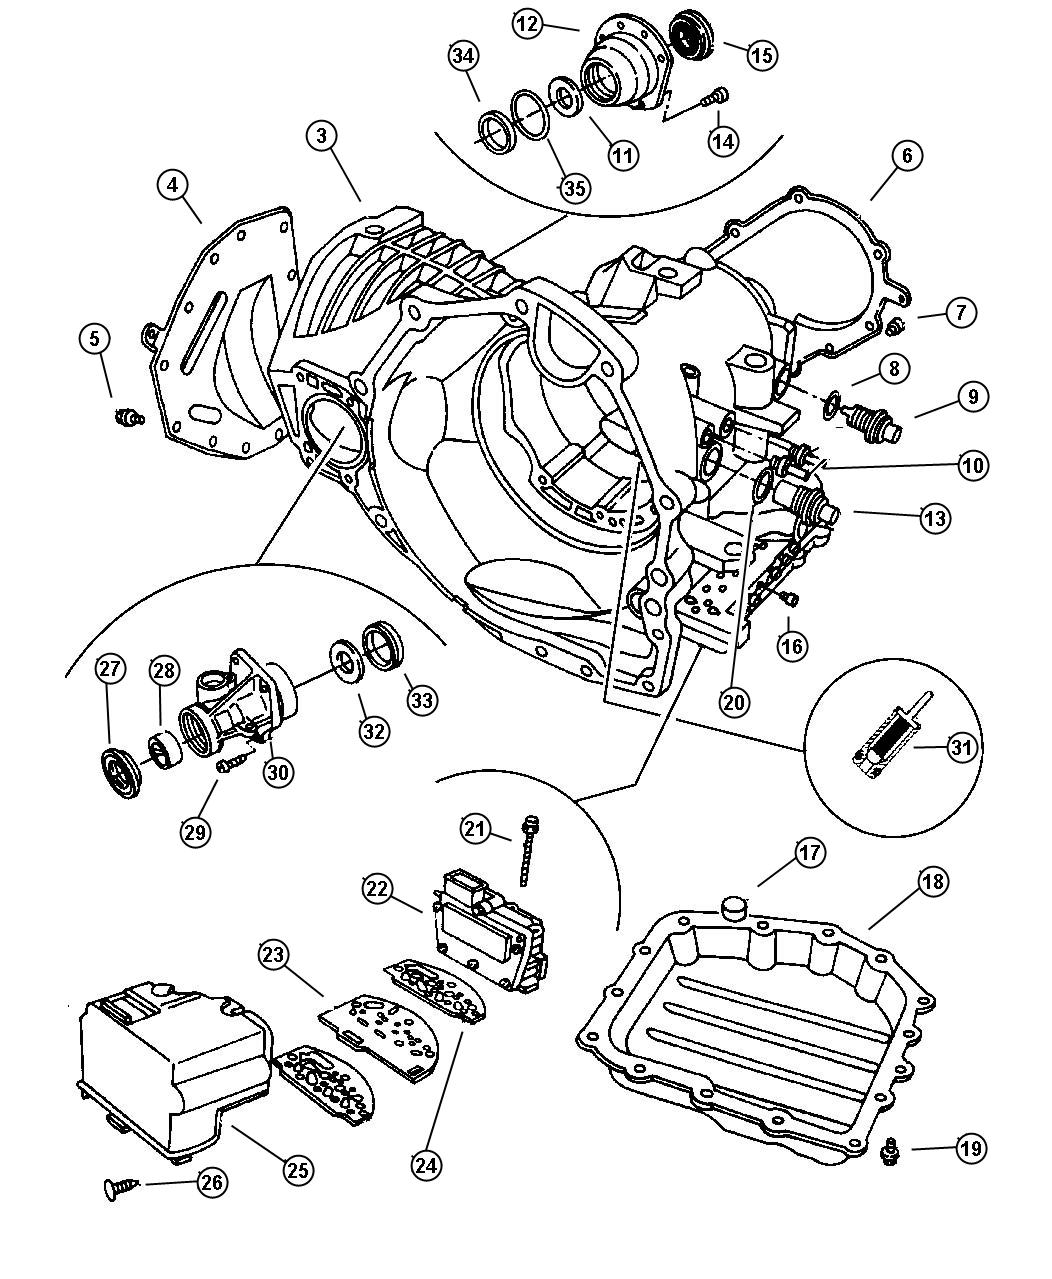 41ae Transmission Diagram, 41ae, Free Engine Image For